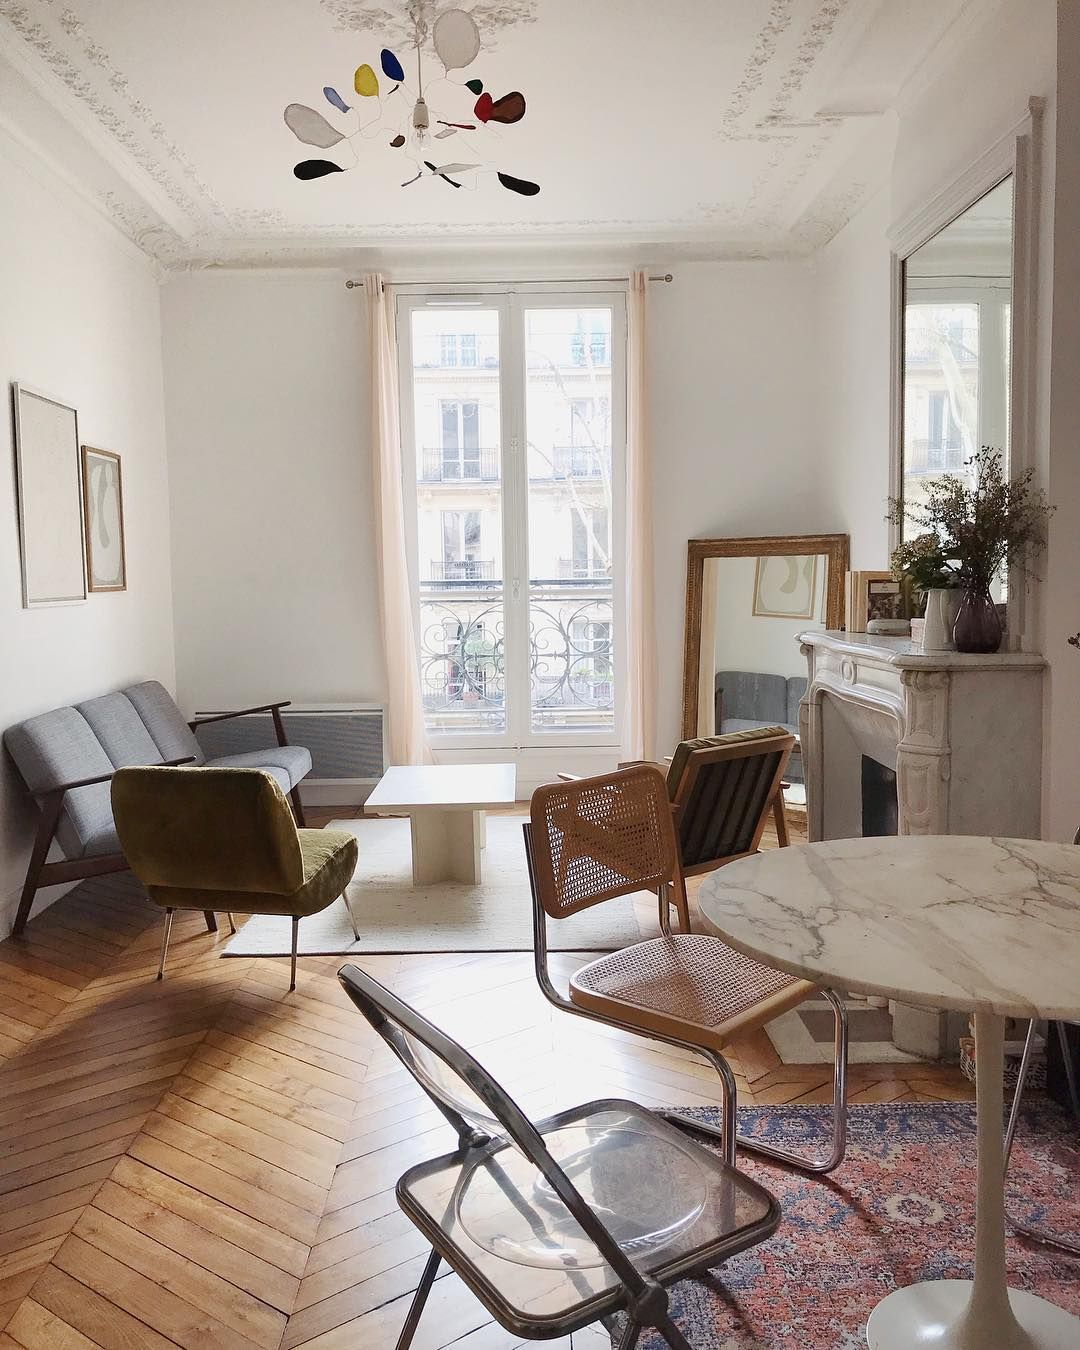 Just Moved In? This French Girl Guide to Decor Is for You #frenchgirlstyle